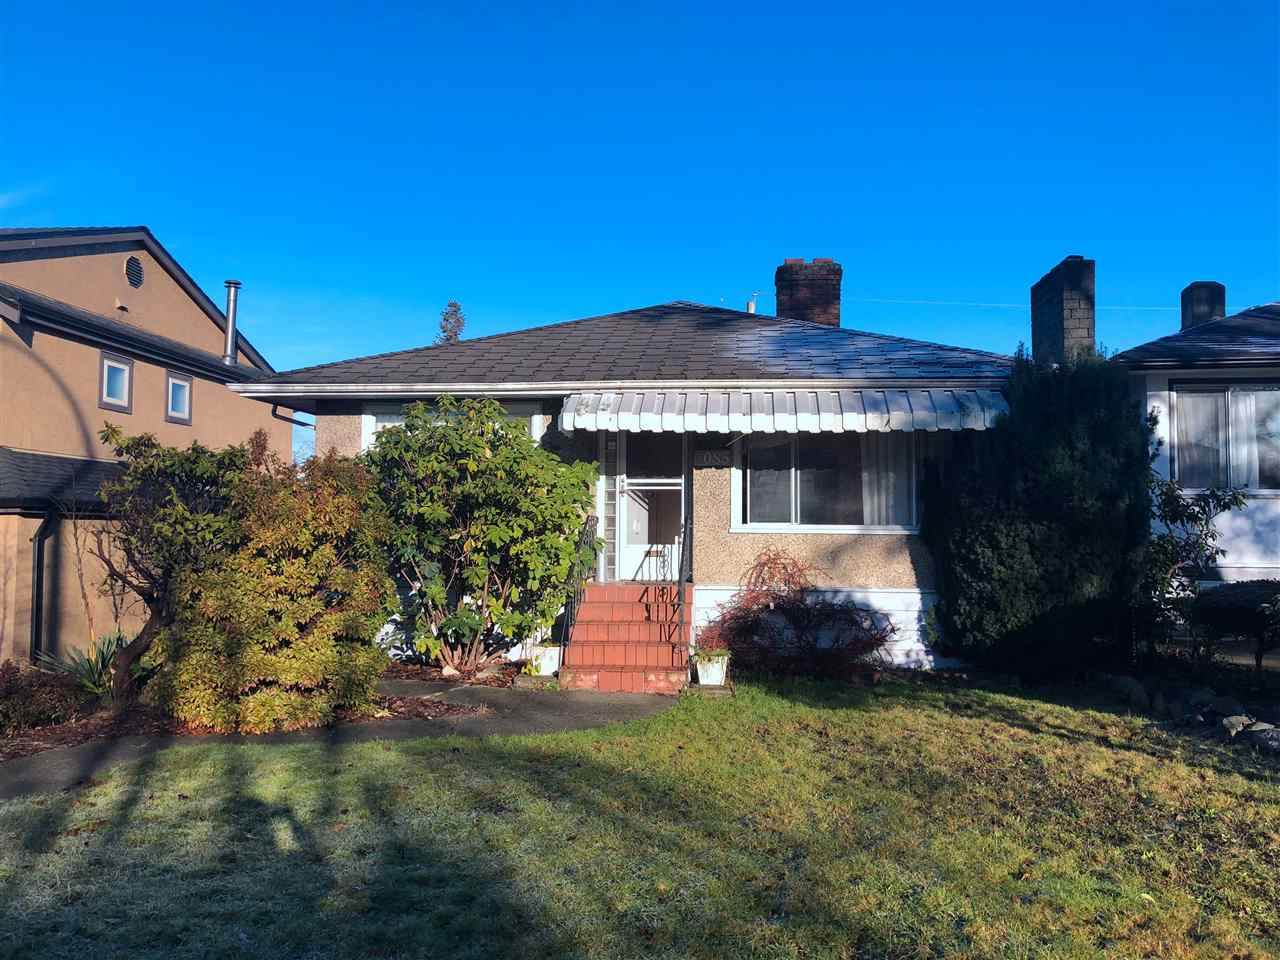 3085 E 18TH AVENUE - Renfrew Heights House/Single Family for sale, 2 Bedrooms (R2525223) - #1